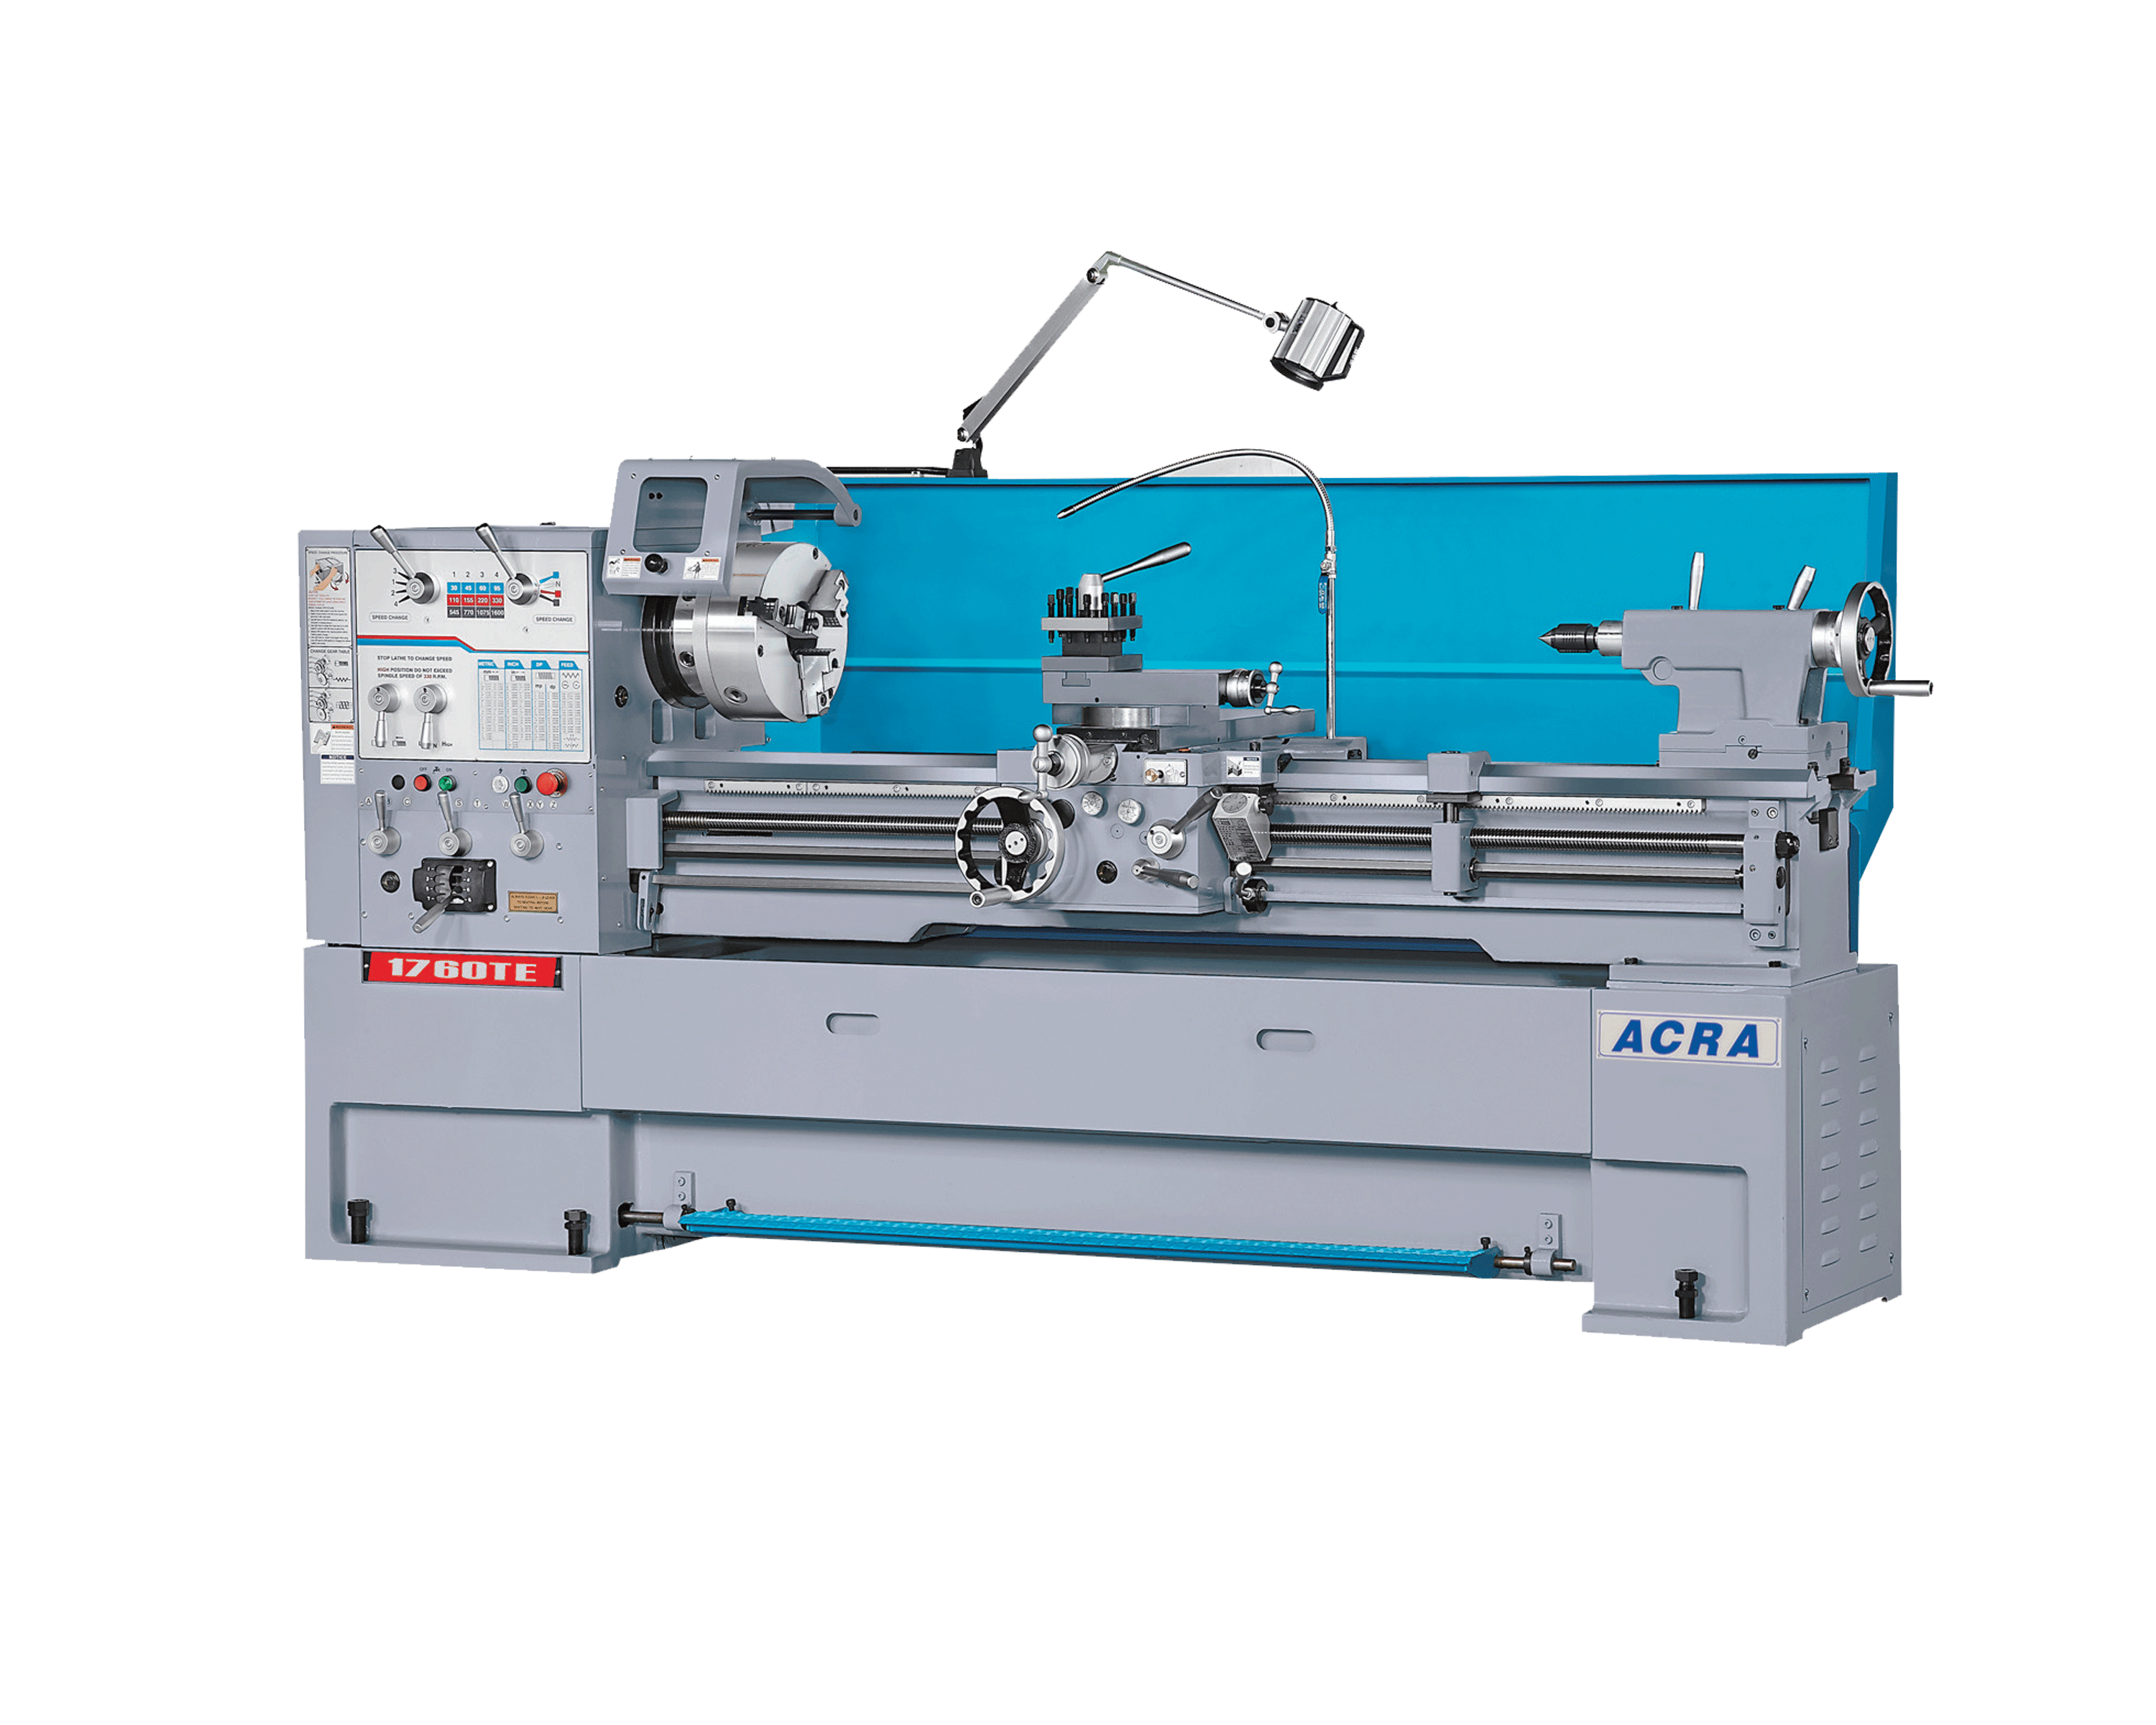 "17"" X 40"" ACRA MODEL 1740TE (3-1/8"" BORE) PRECISION HIGH SPEED GAP BED ENGINE LATHE"